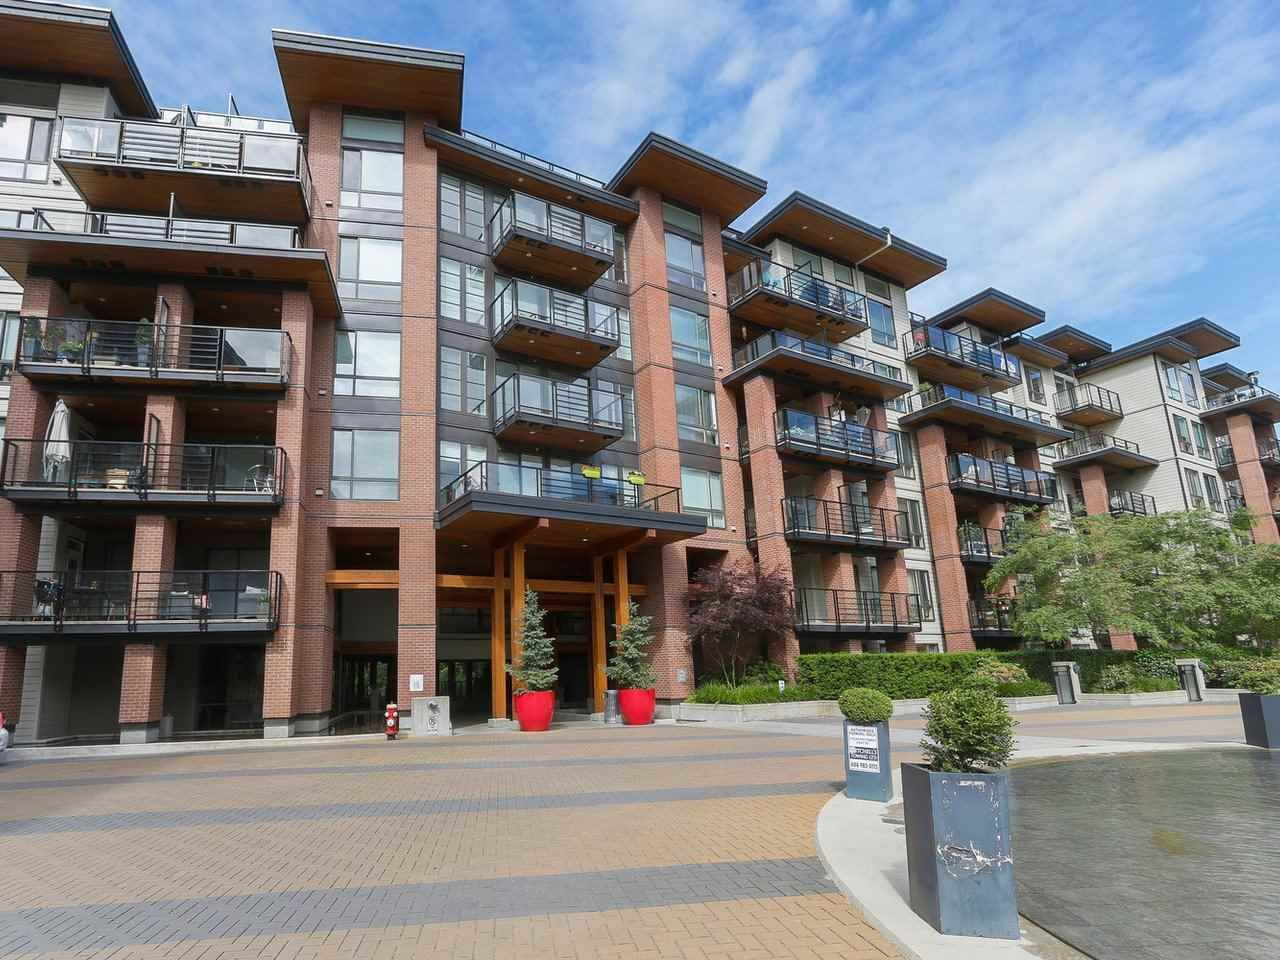 """Main Photo: 408 733 W 3RD Street in North Vancouver: Harbourside Condo for sale in """"THE SHORE"""" : MLS®# R2424919"""